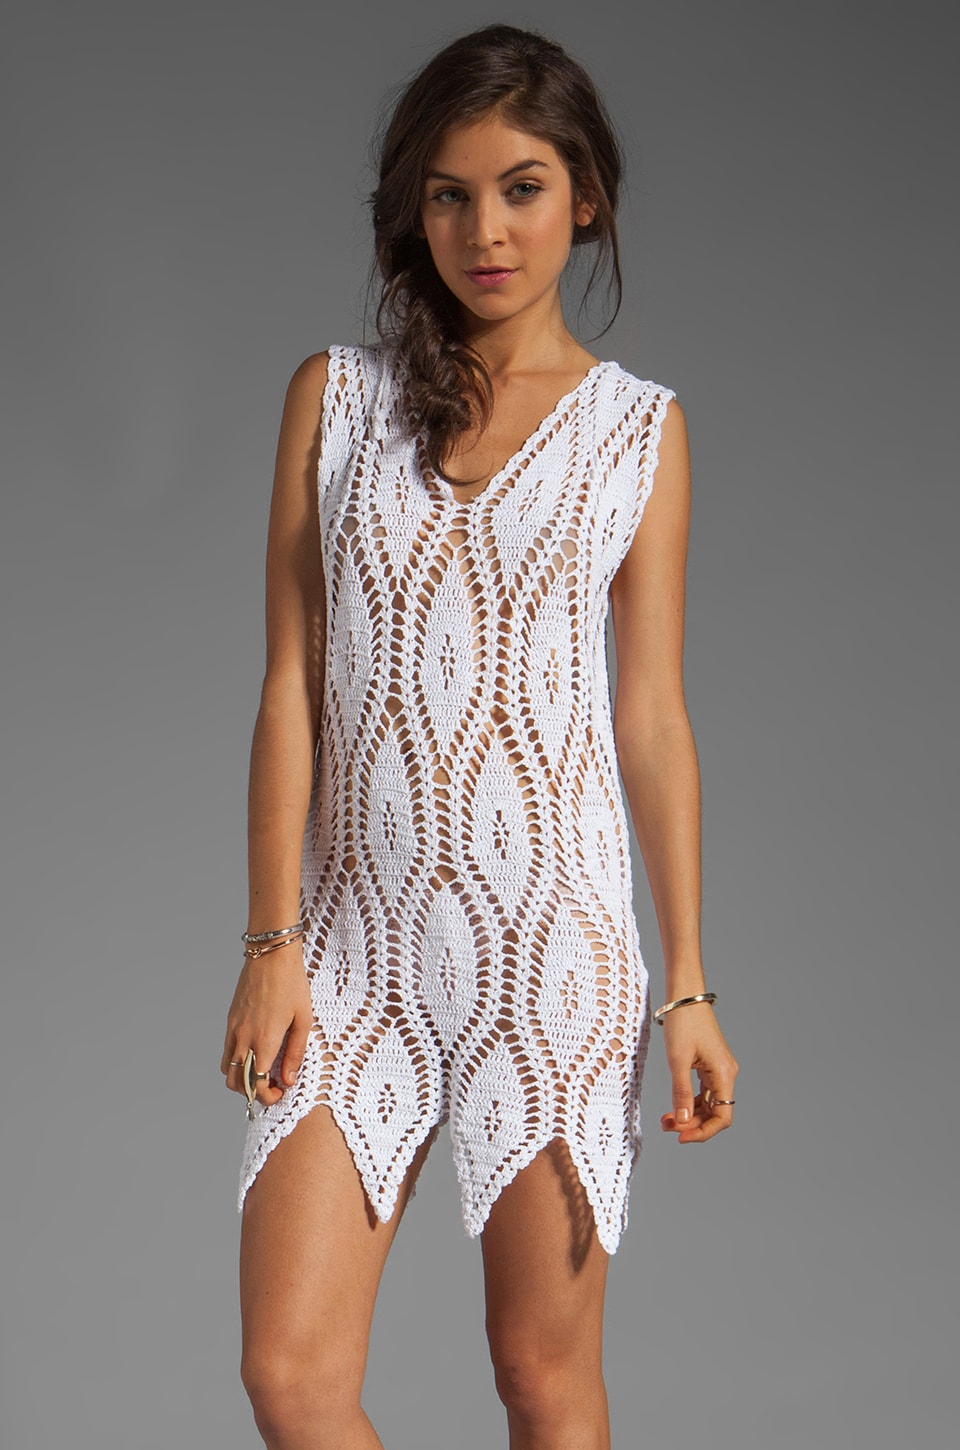 MINKPINK Anina Crochet Beach Dress in Cream